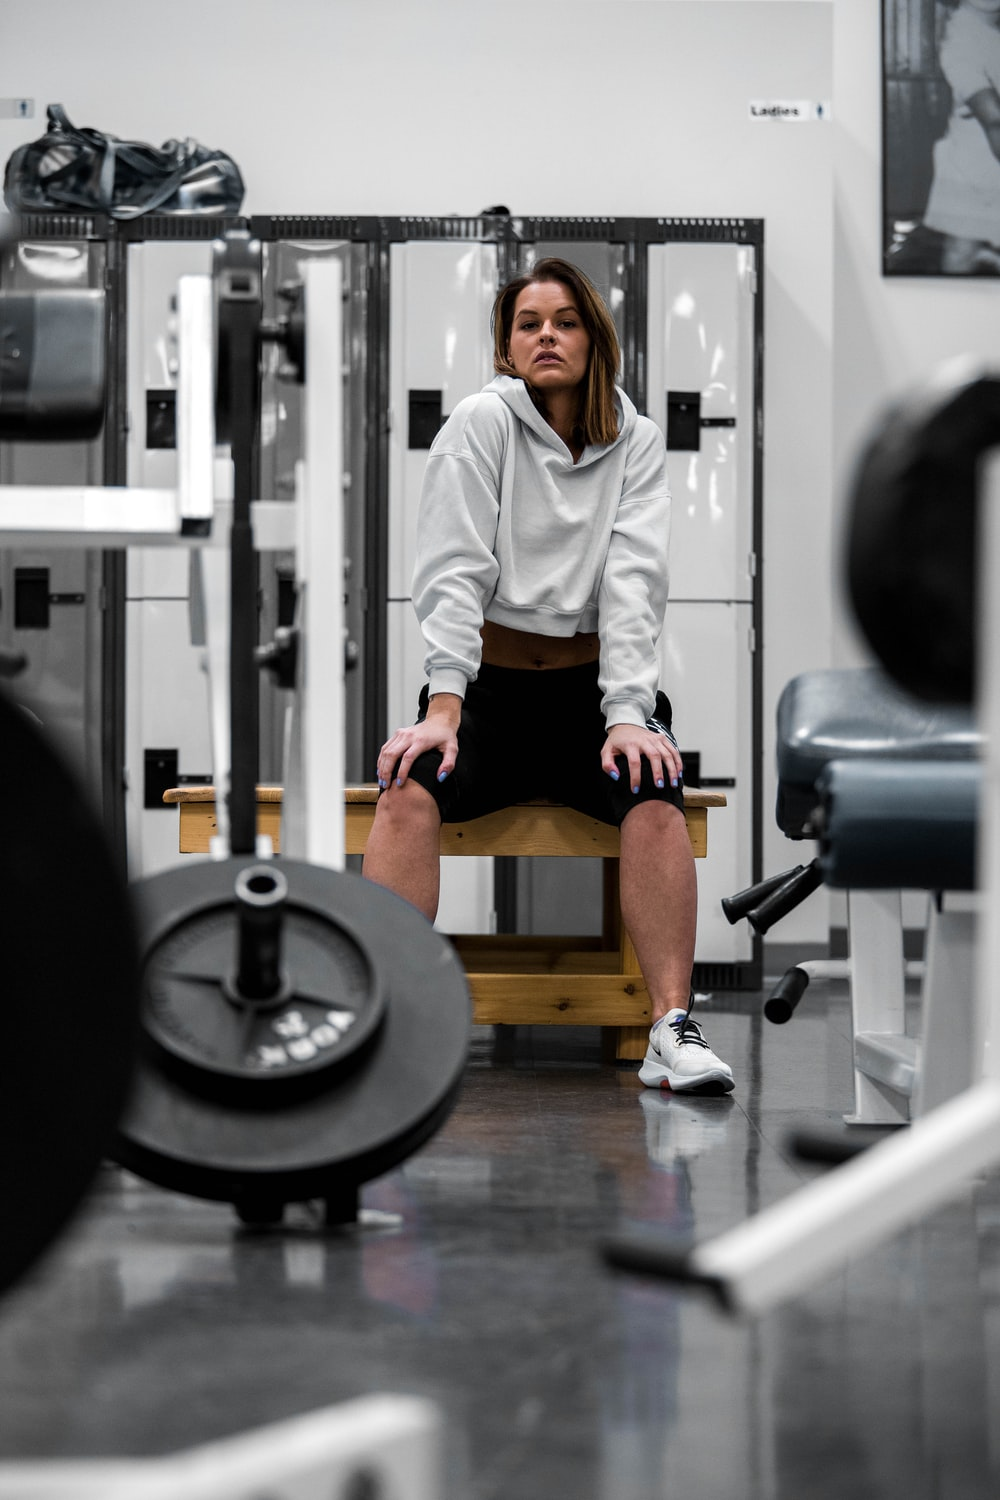 man in white long sleeve shirt and black shorts sitting on black and gray exercise bench